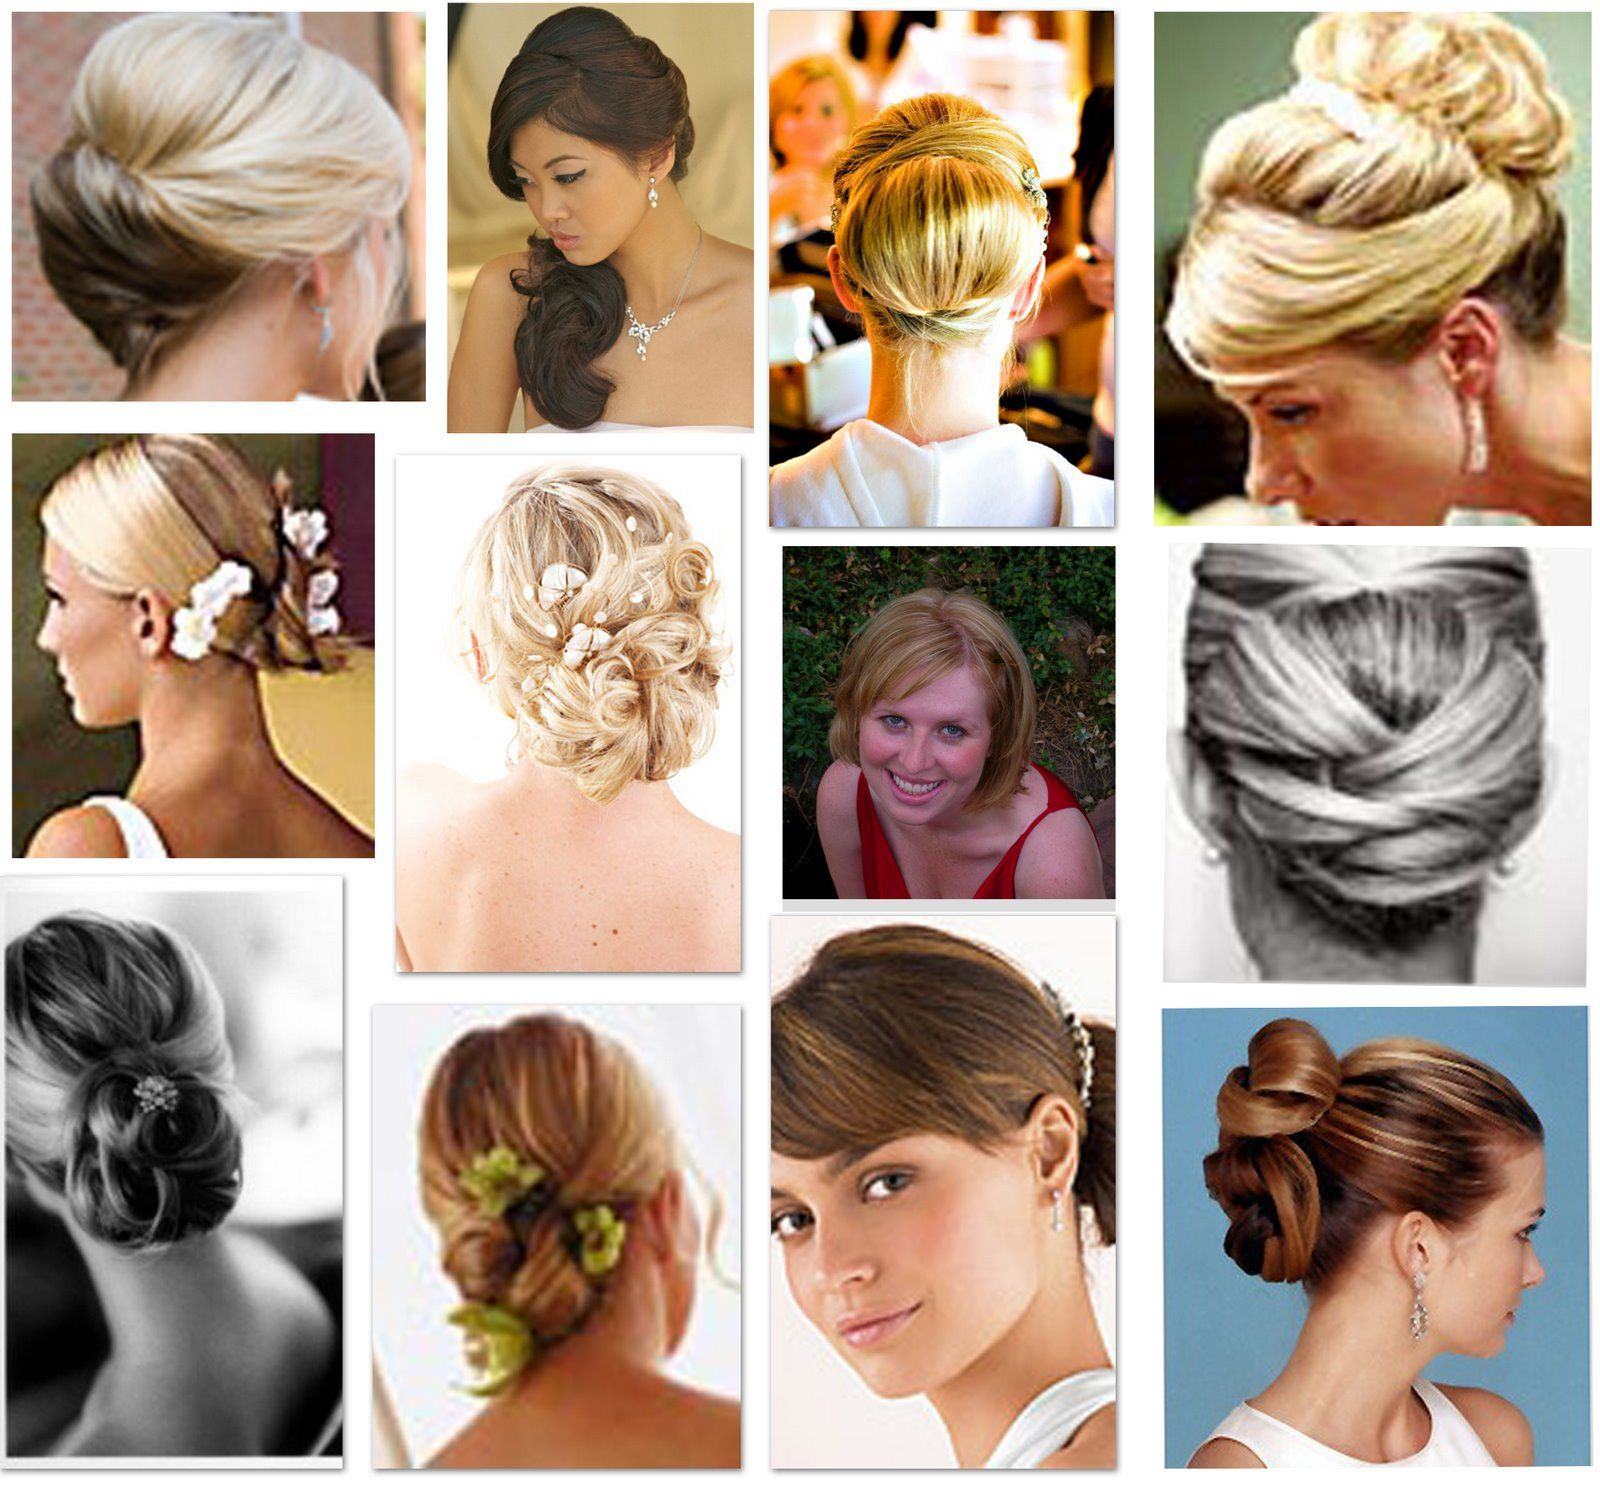 Groovy 1000 Images About Classic Wedding Hair Updos On Pinterest Short Hairstyles For Black Women Fulllsitofus